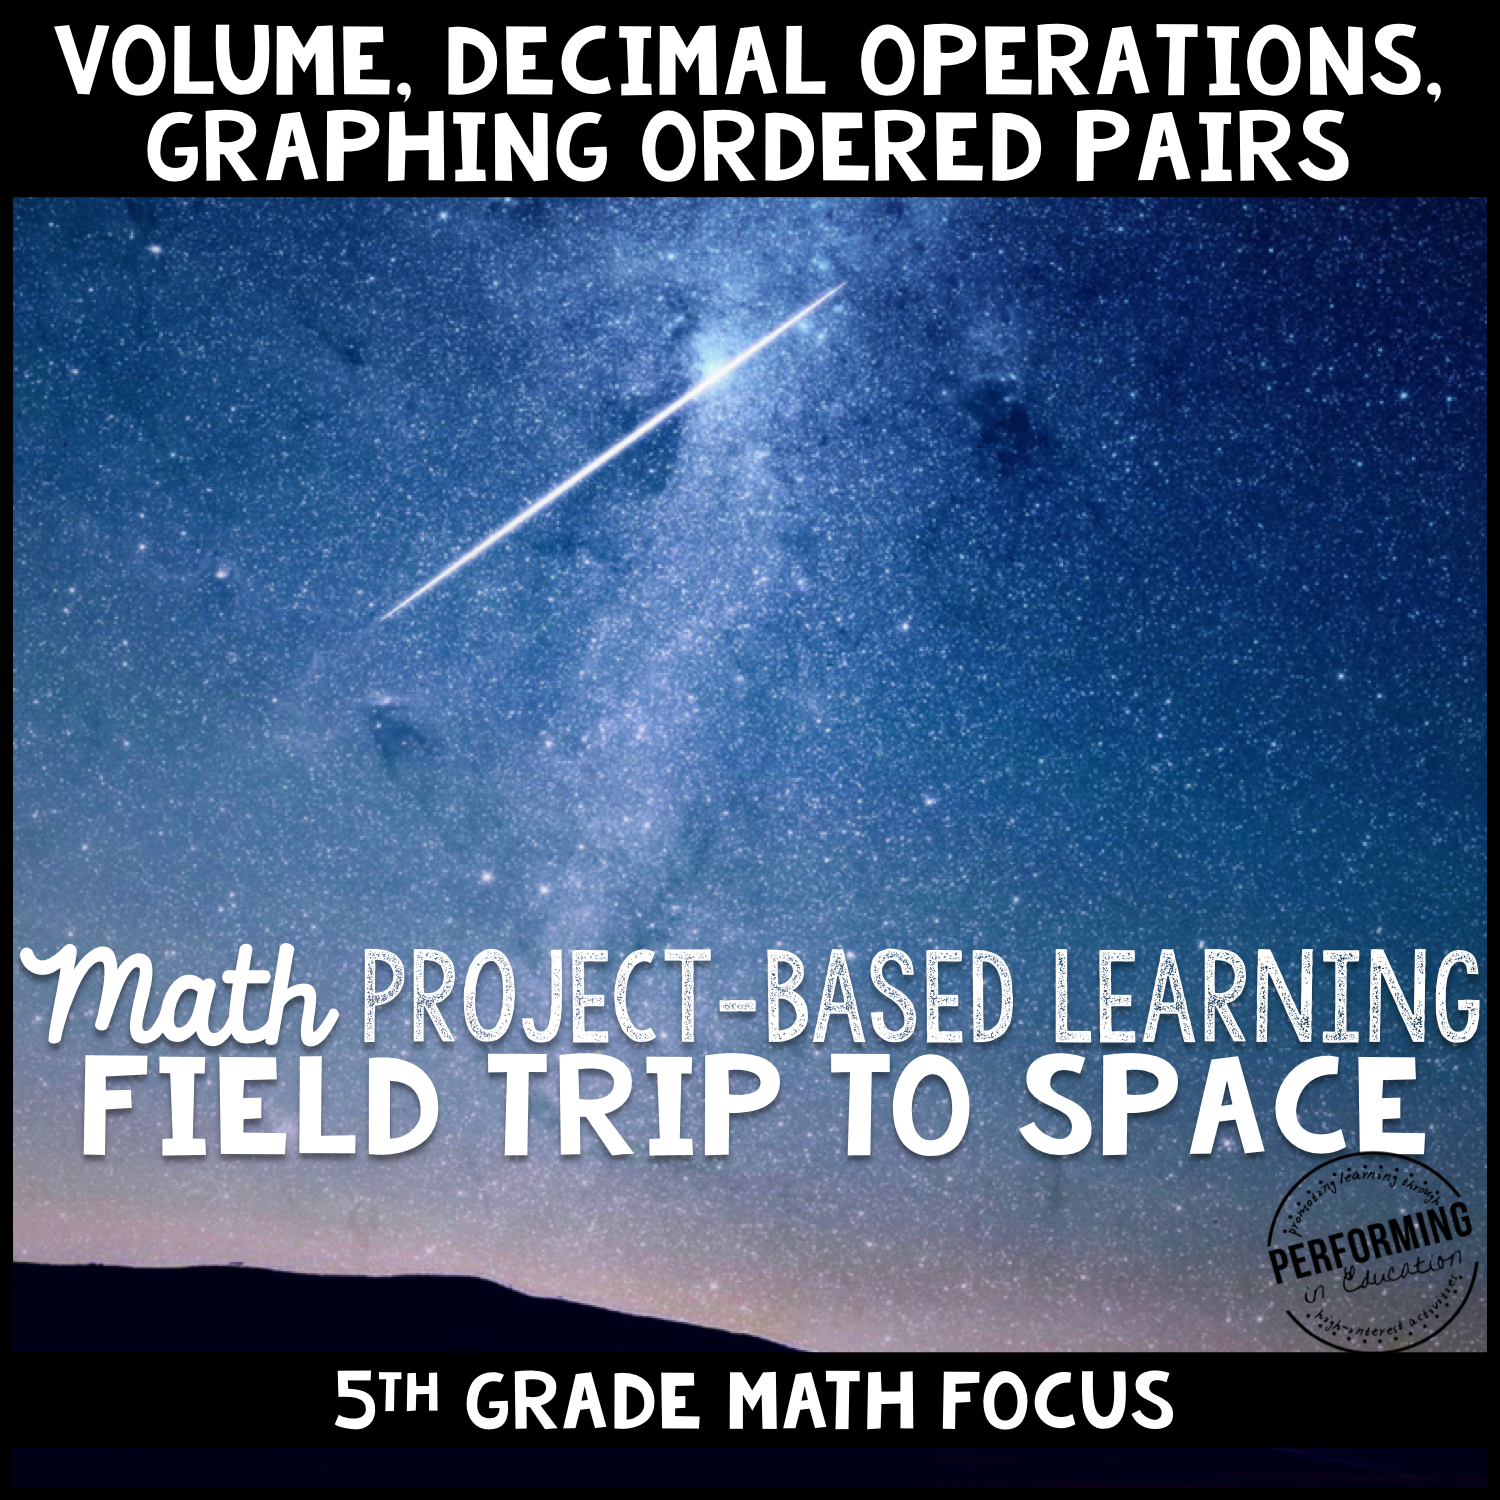 Project Based Learning: Field Trip to Space - Decimals, Graphing, Volume 5th 00040